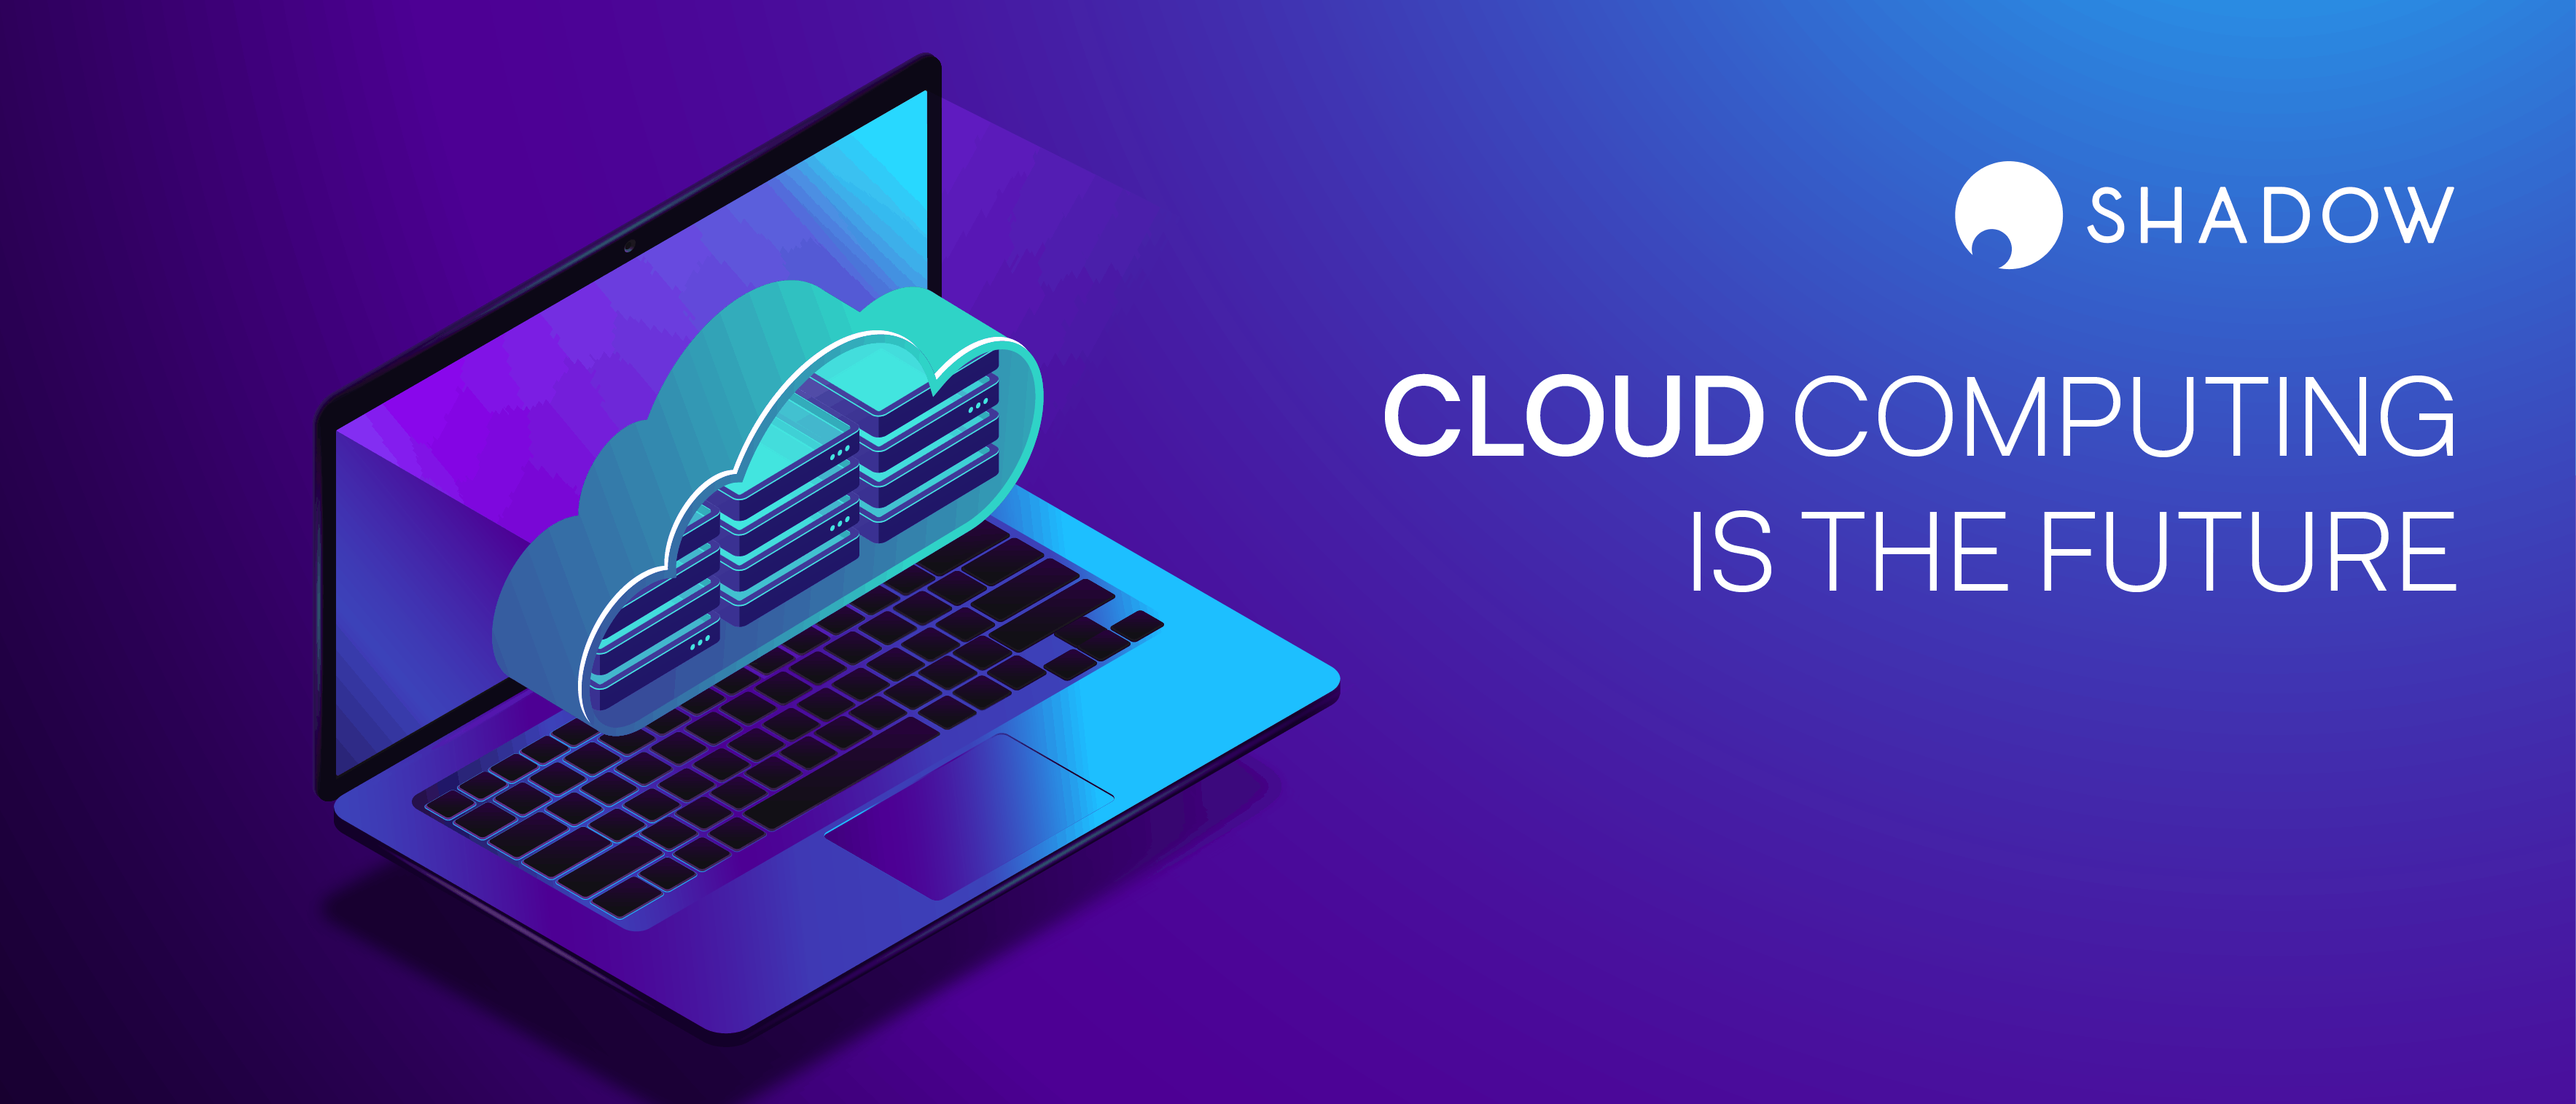 Why Cloud Computing is the Future - Shadow